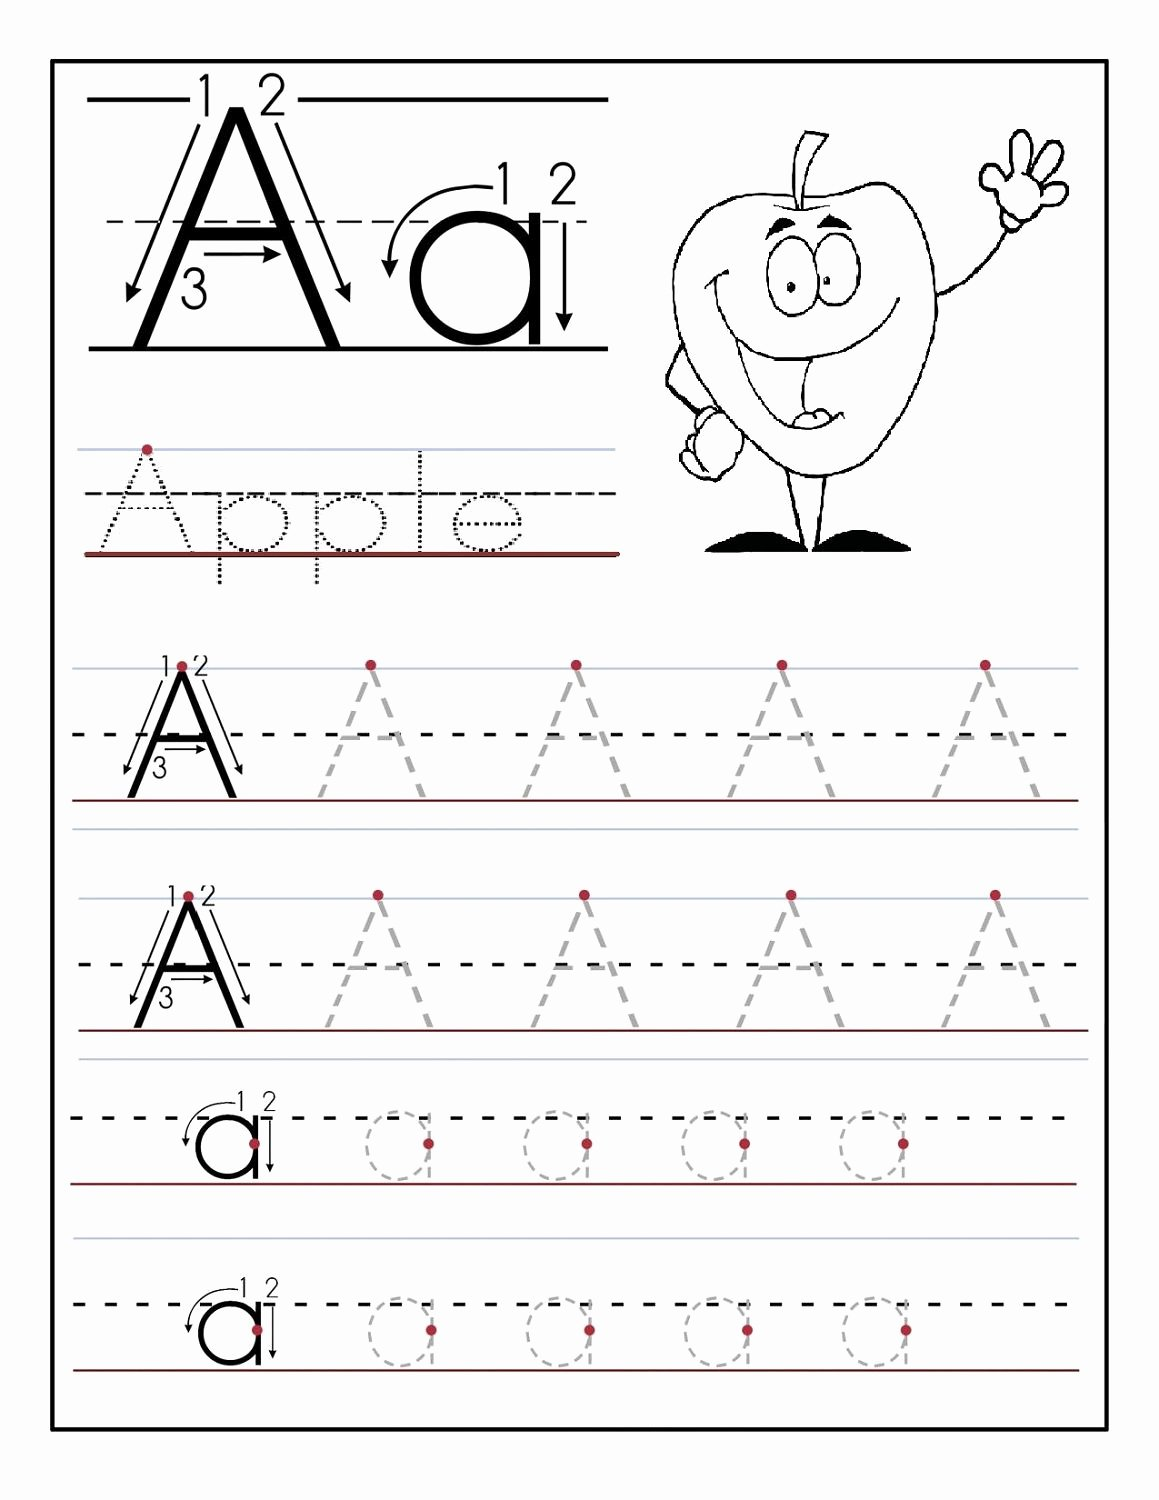 Worksheets for Preschoolers Tracing Letters Ideas Trace Letter A Sheets to Print